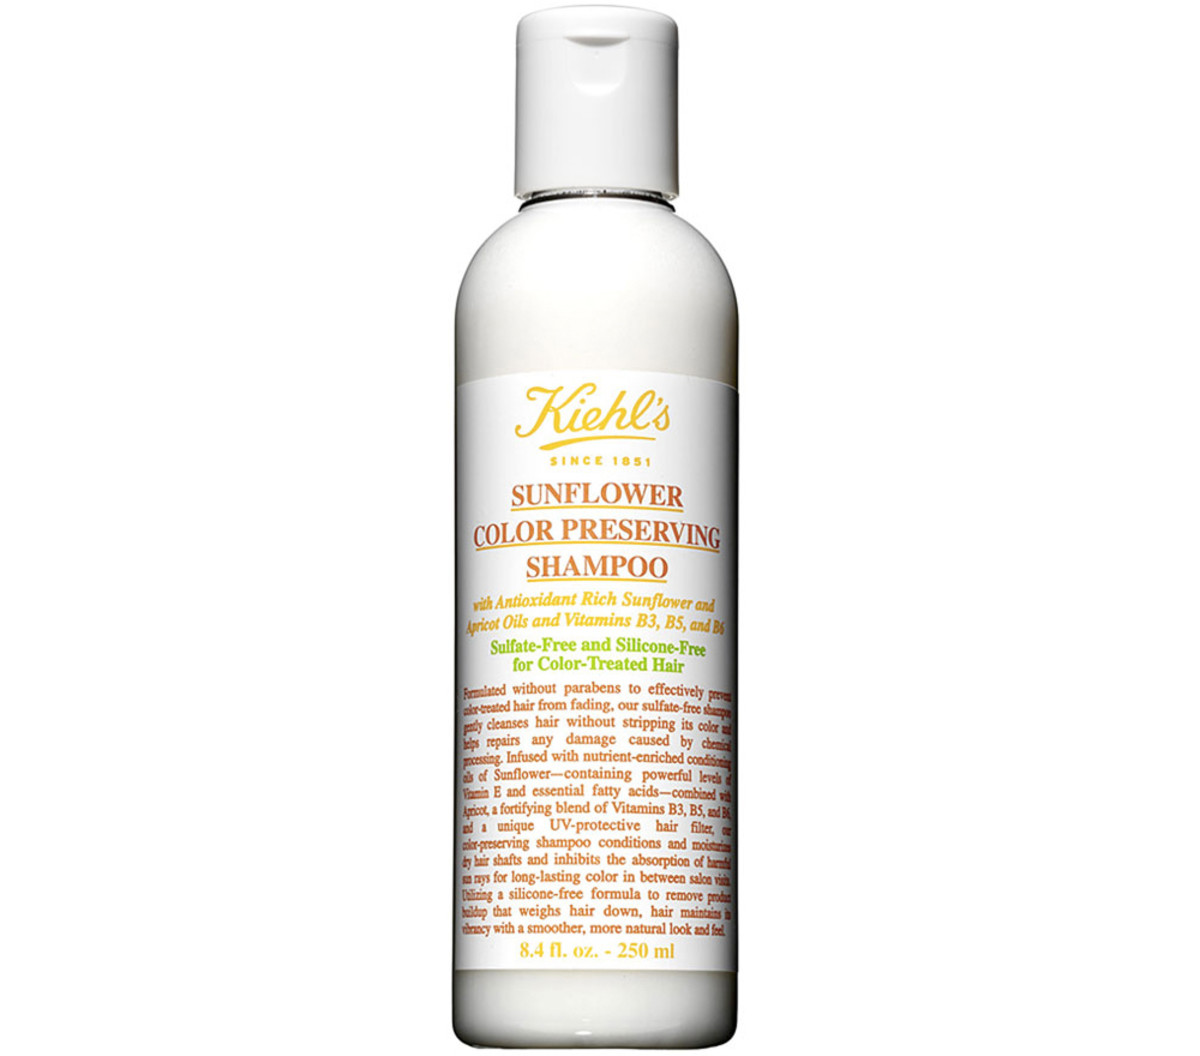 Kiehl's sunflower color-preserving shampoo, $7-$30, available at Nordstrom.